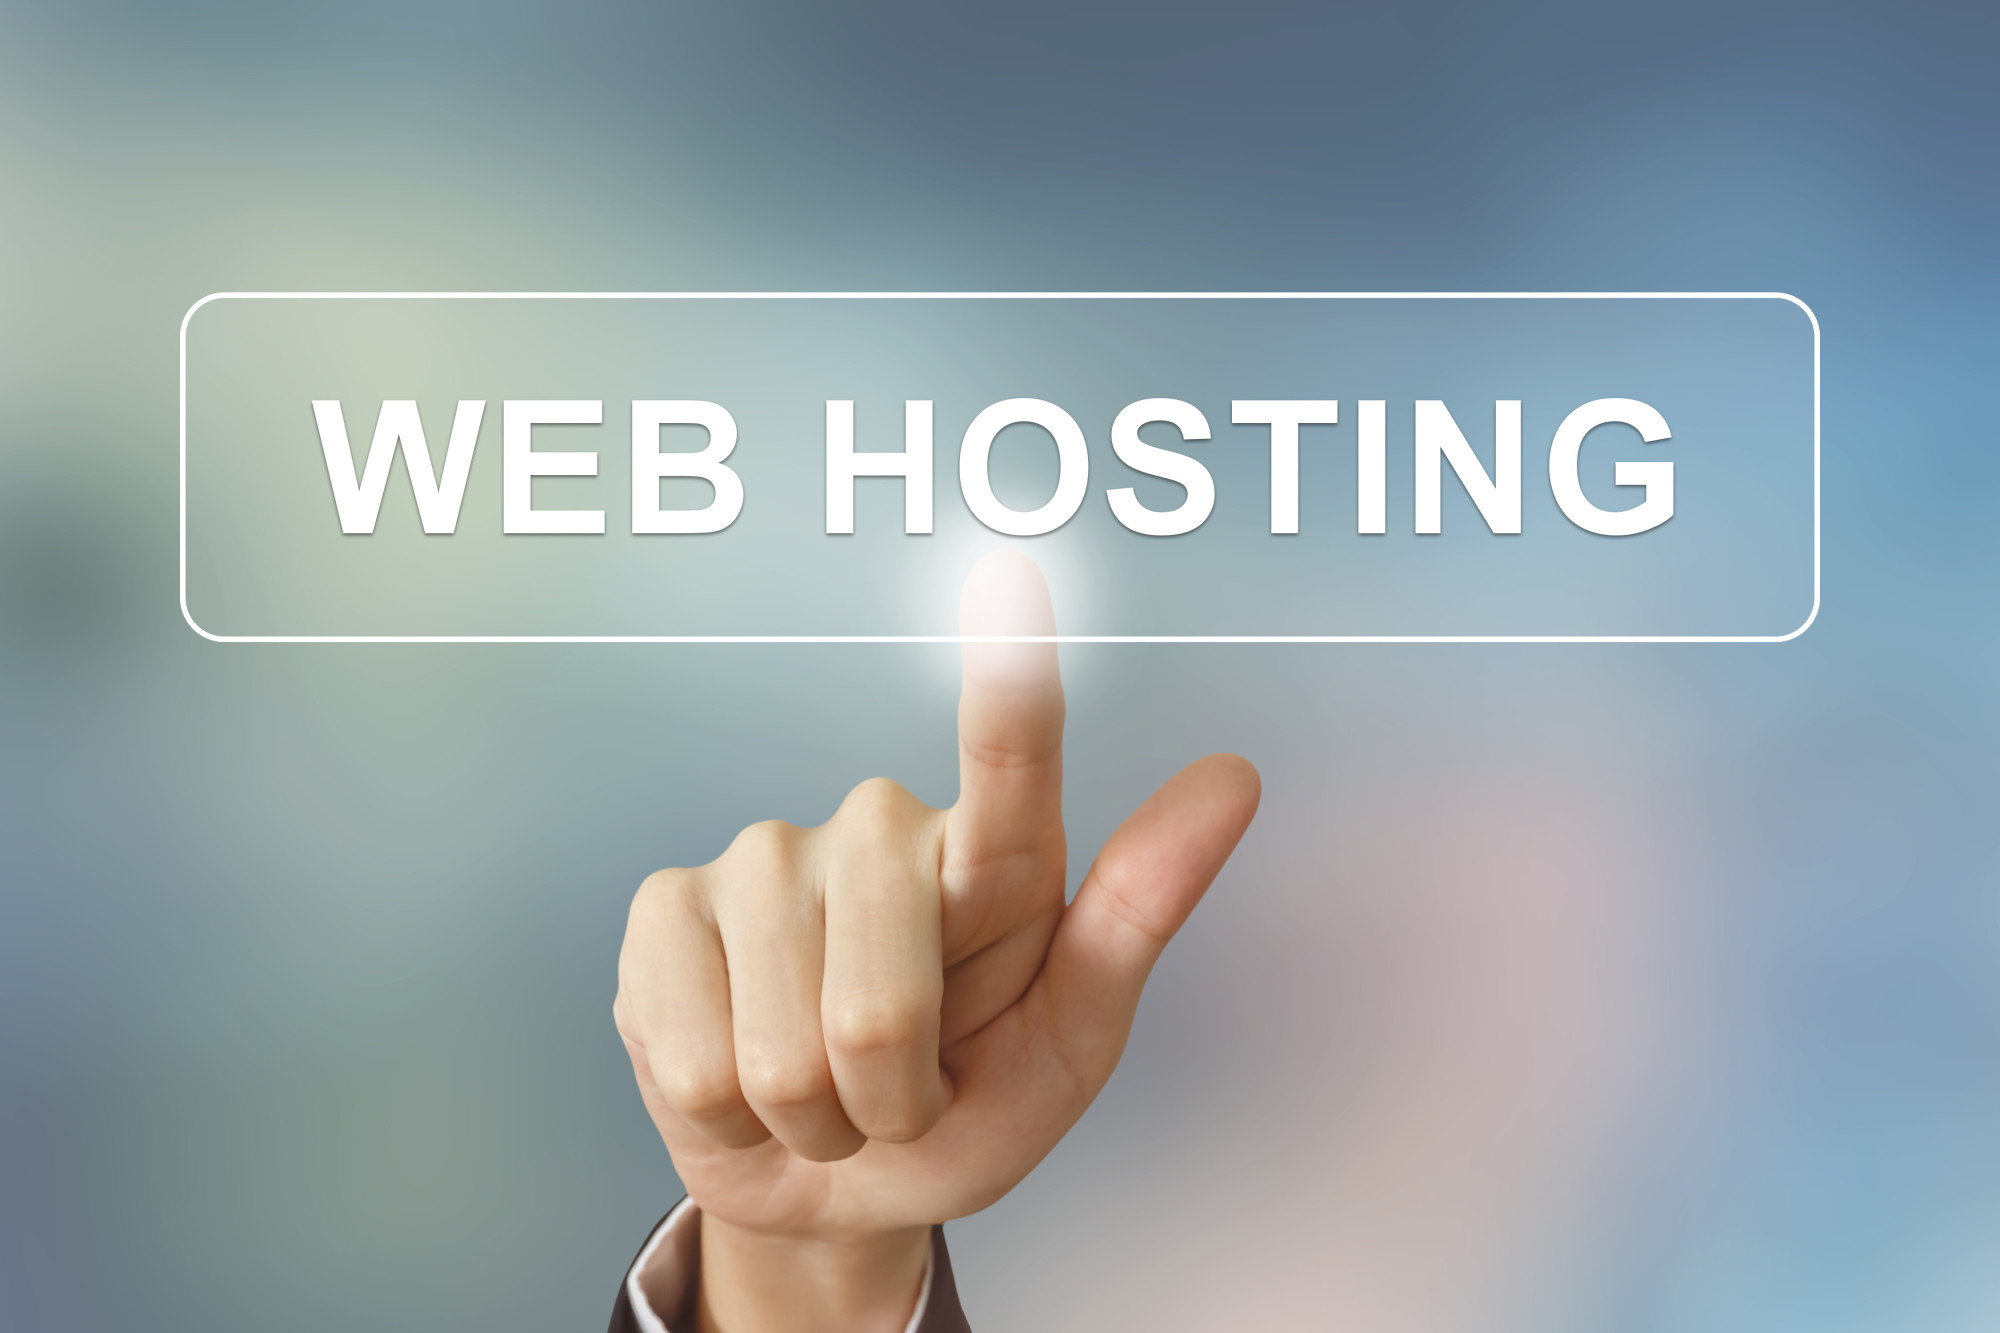 web hosting text